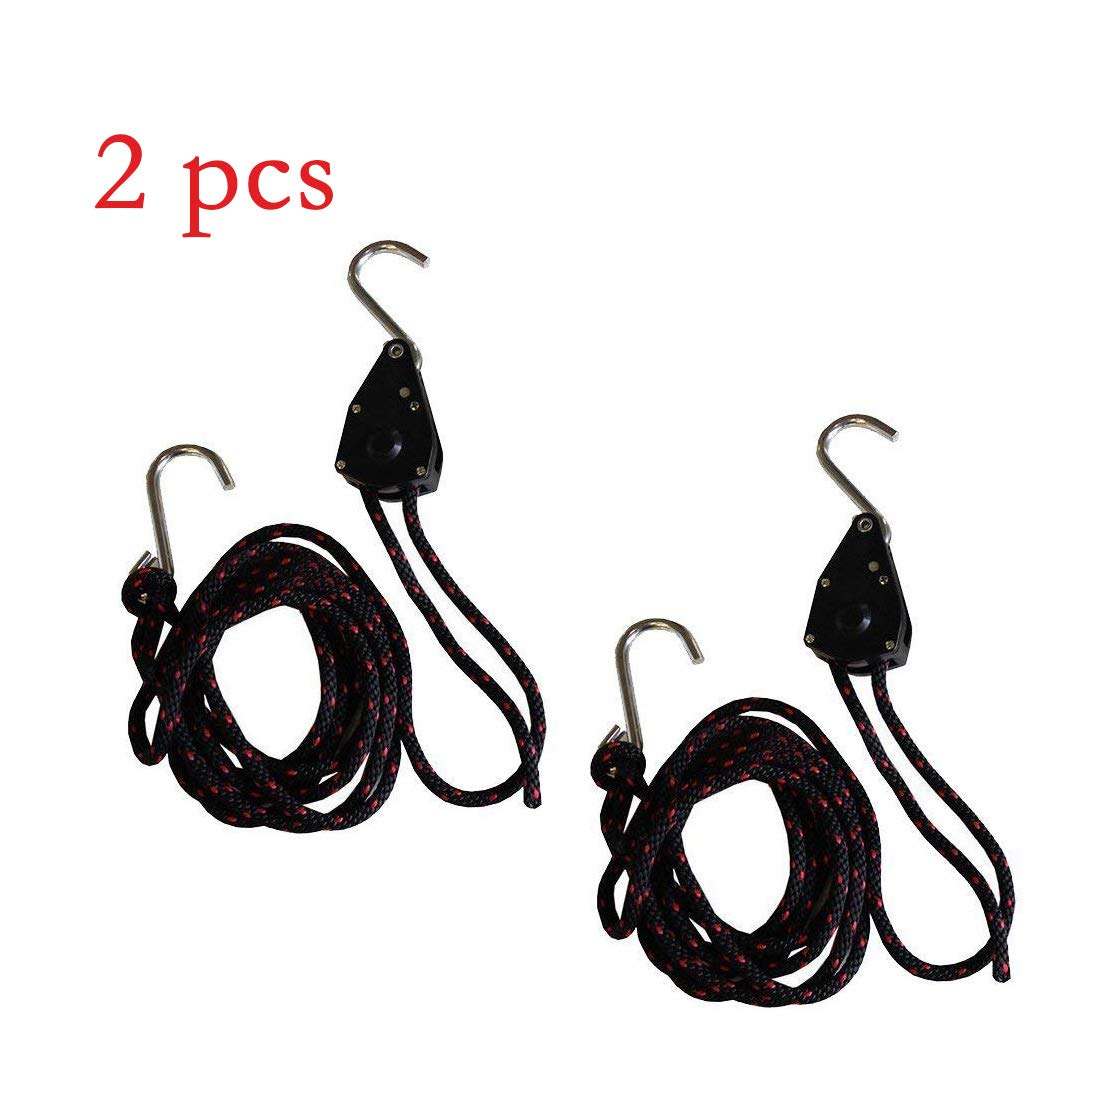 TPSKY 2 Pieces/Set 9.35ft Marine Kayak Canoe Fishing Boat Bow Stern Rope Tie Down Strap with Hooks Pulley Ratchets Quick Draw